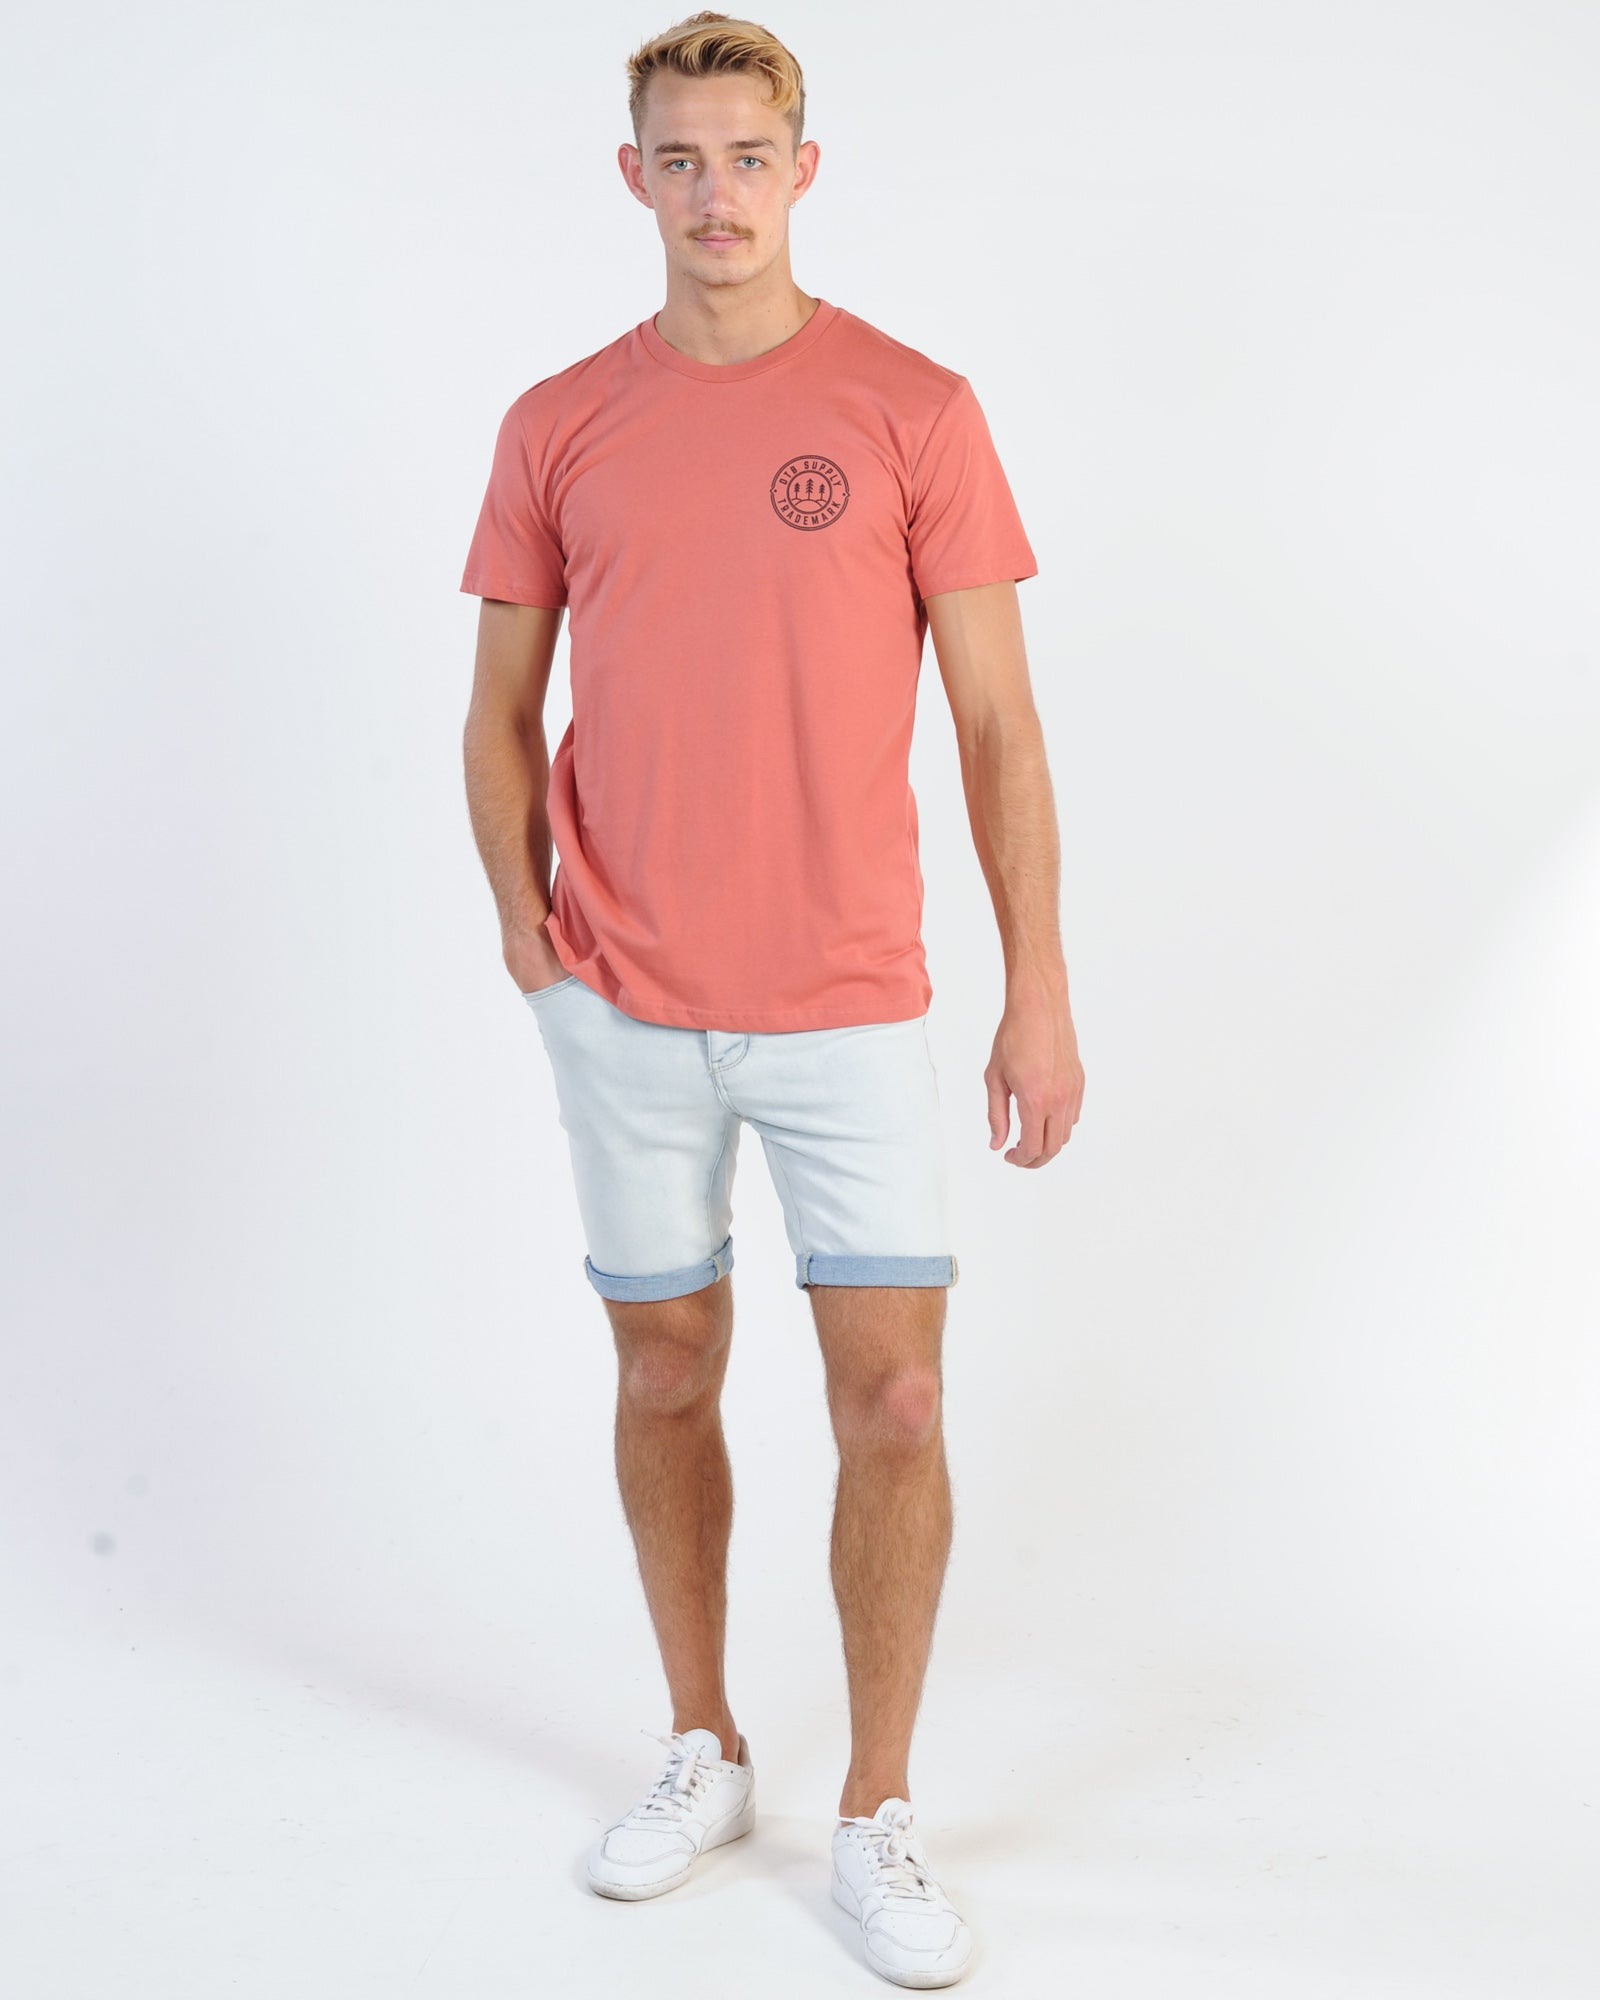 Dtb Supply Woods Tee - Coral